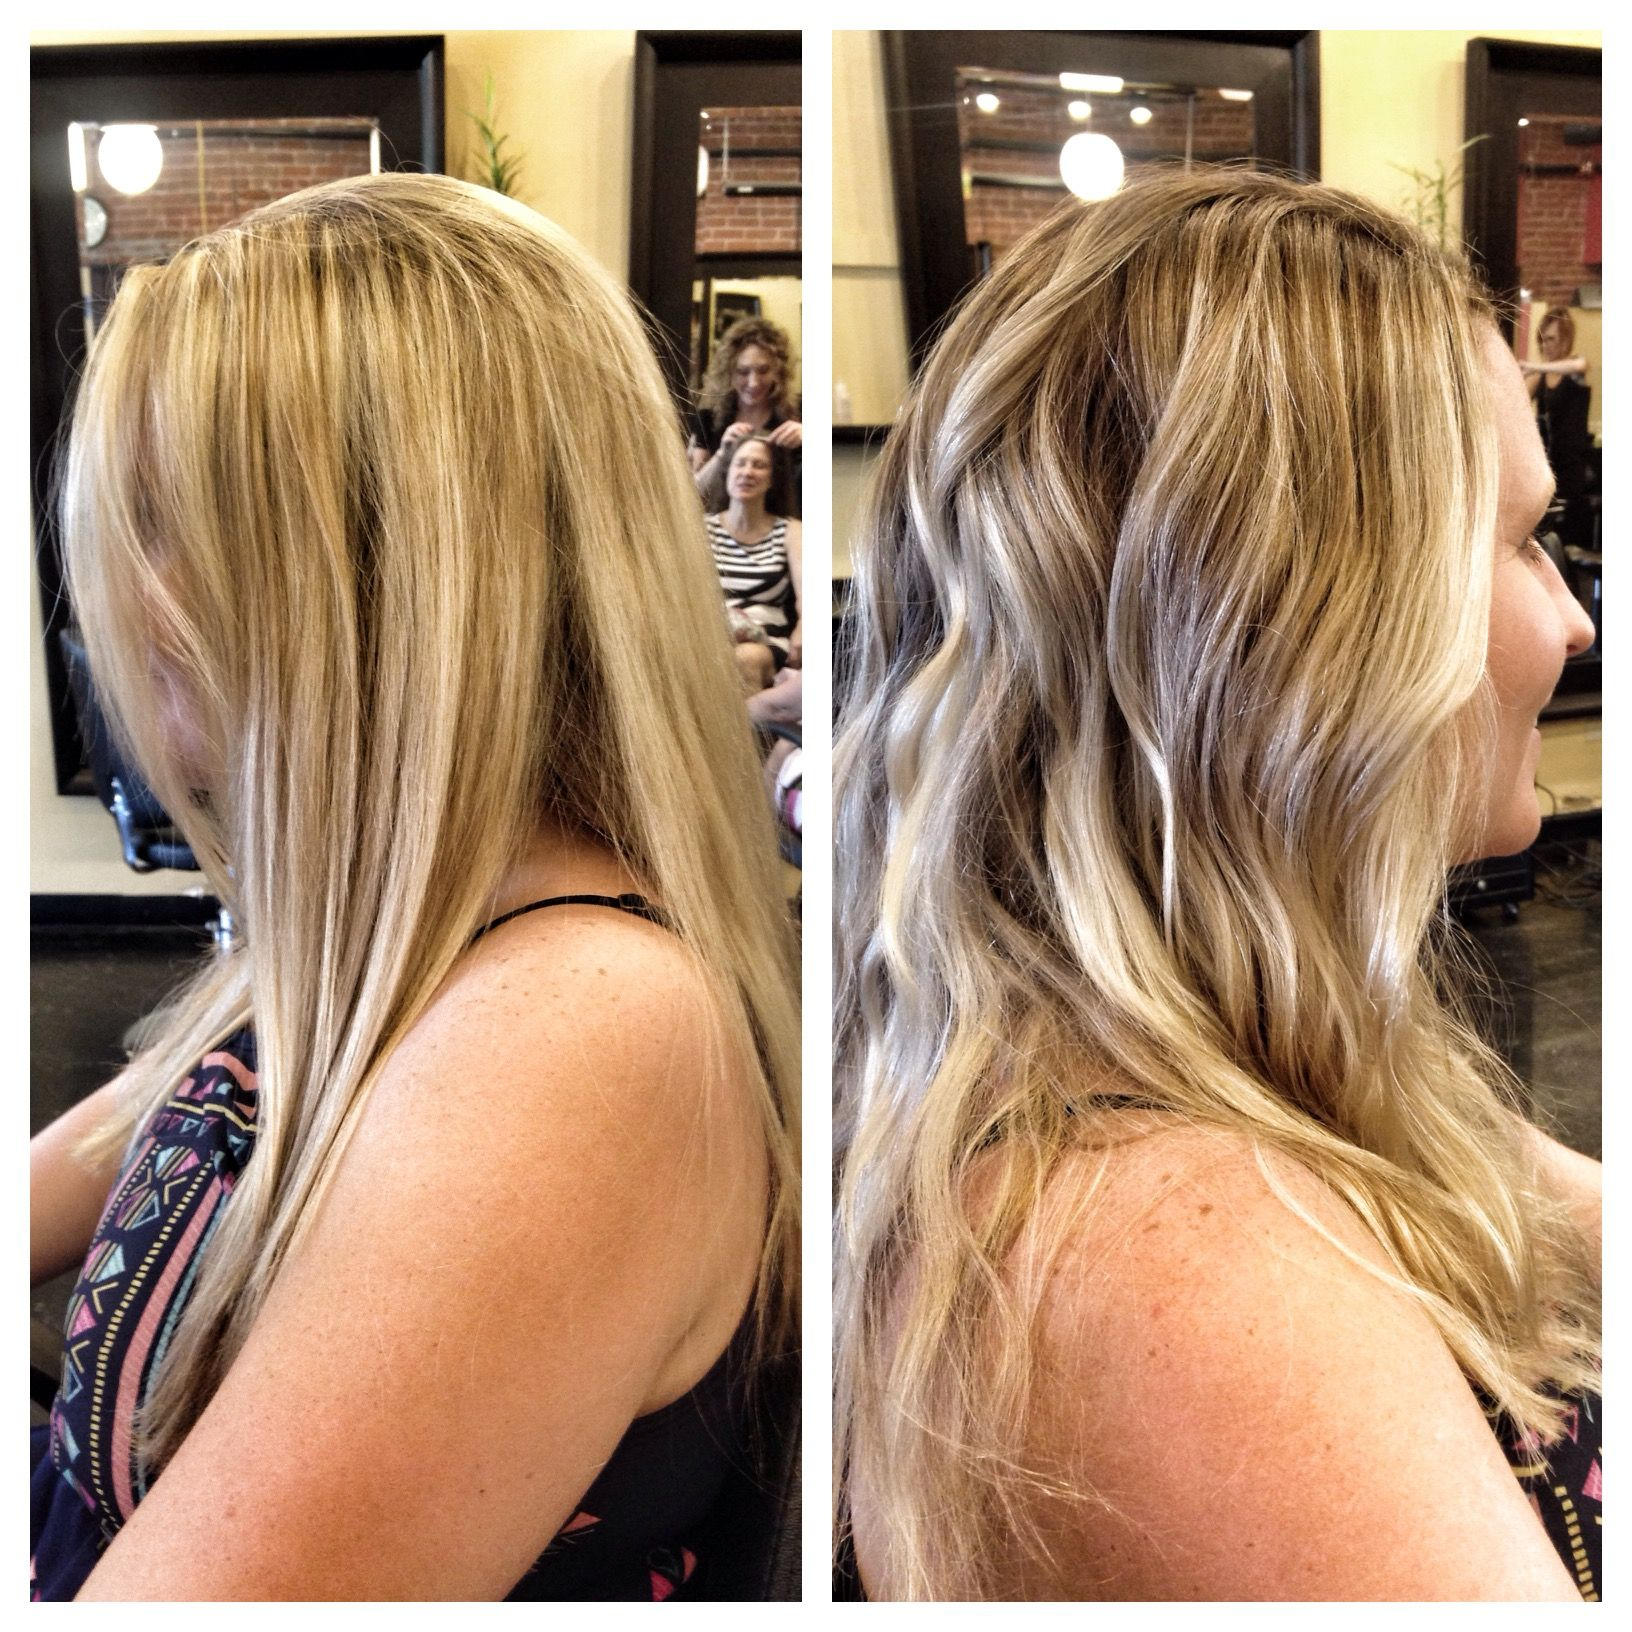 Before and after! A full on blonde to a dark blonde